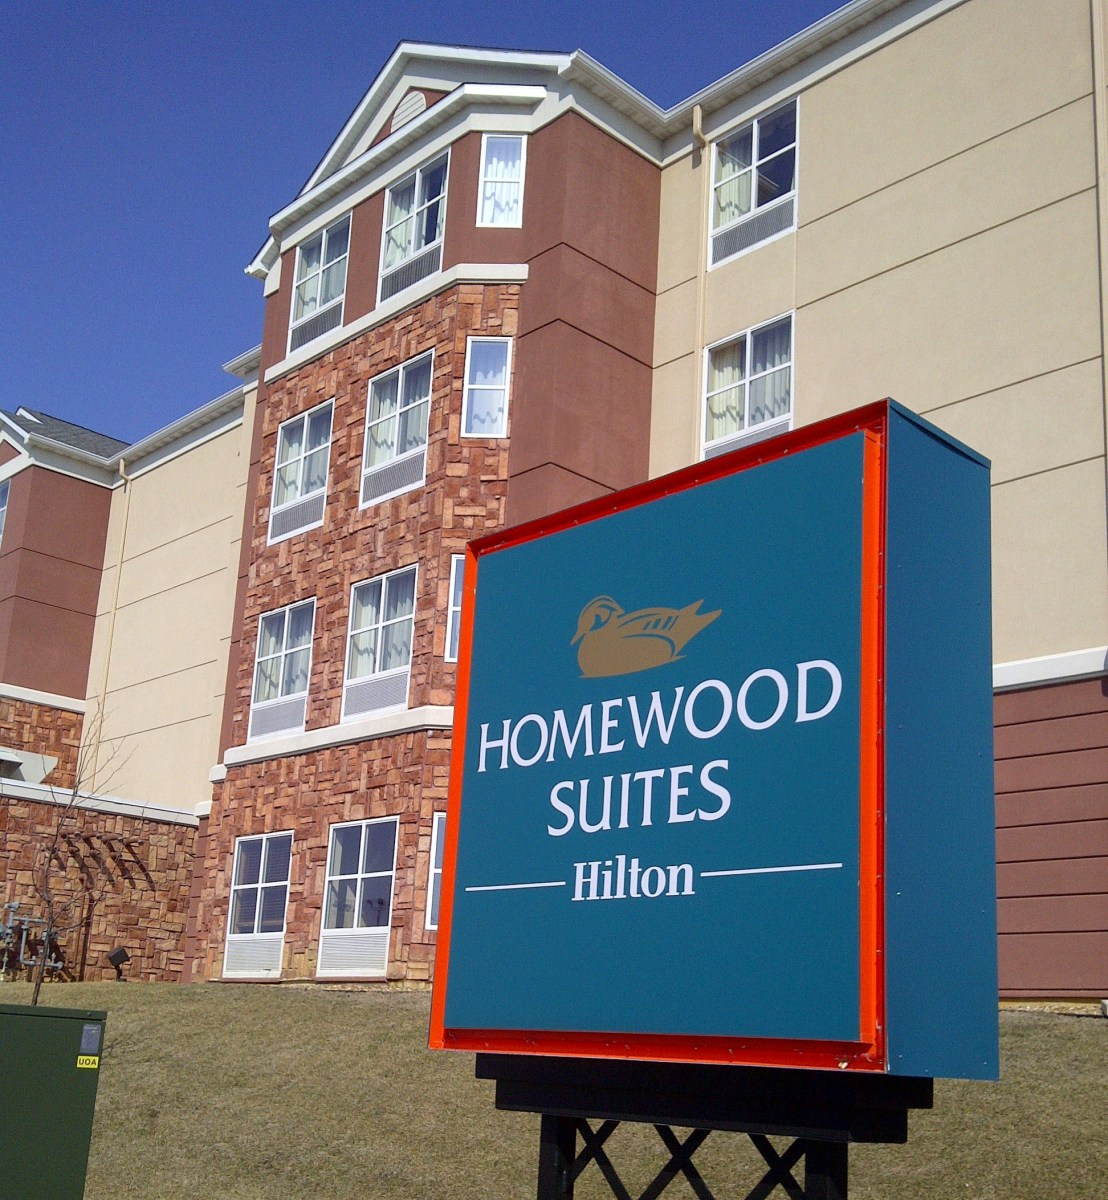 Homewood Suites- This can be your home for $95 per night